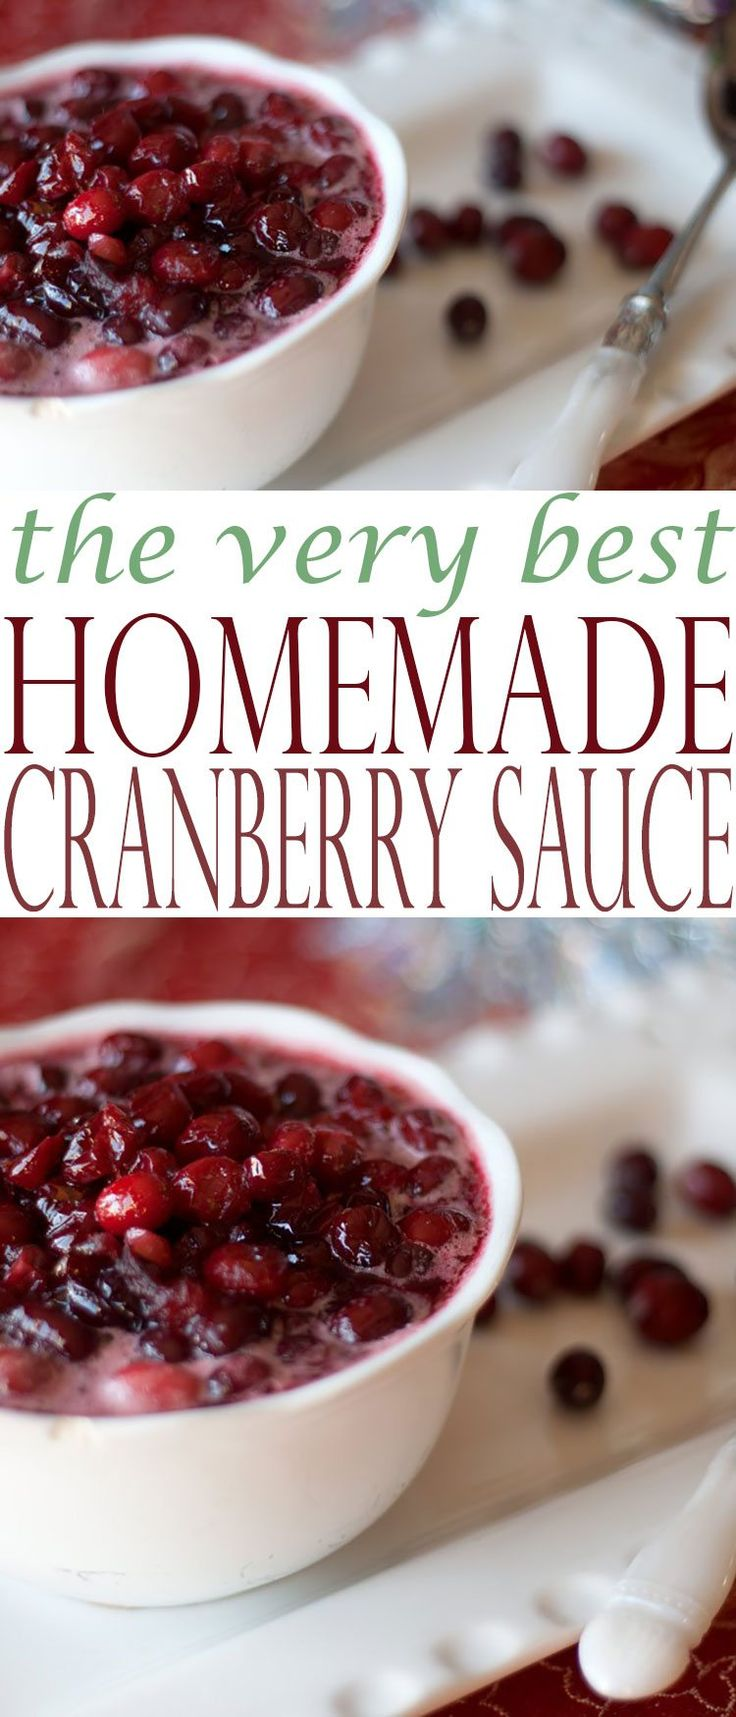 Homemade Cranberry Sauce Recipe is the perfect cranberry sauce for any holiday: Thanksgiving, Easter, Christmas, or any other occasion.